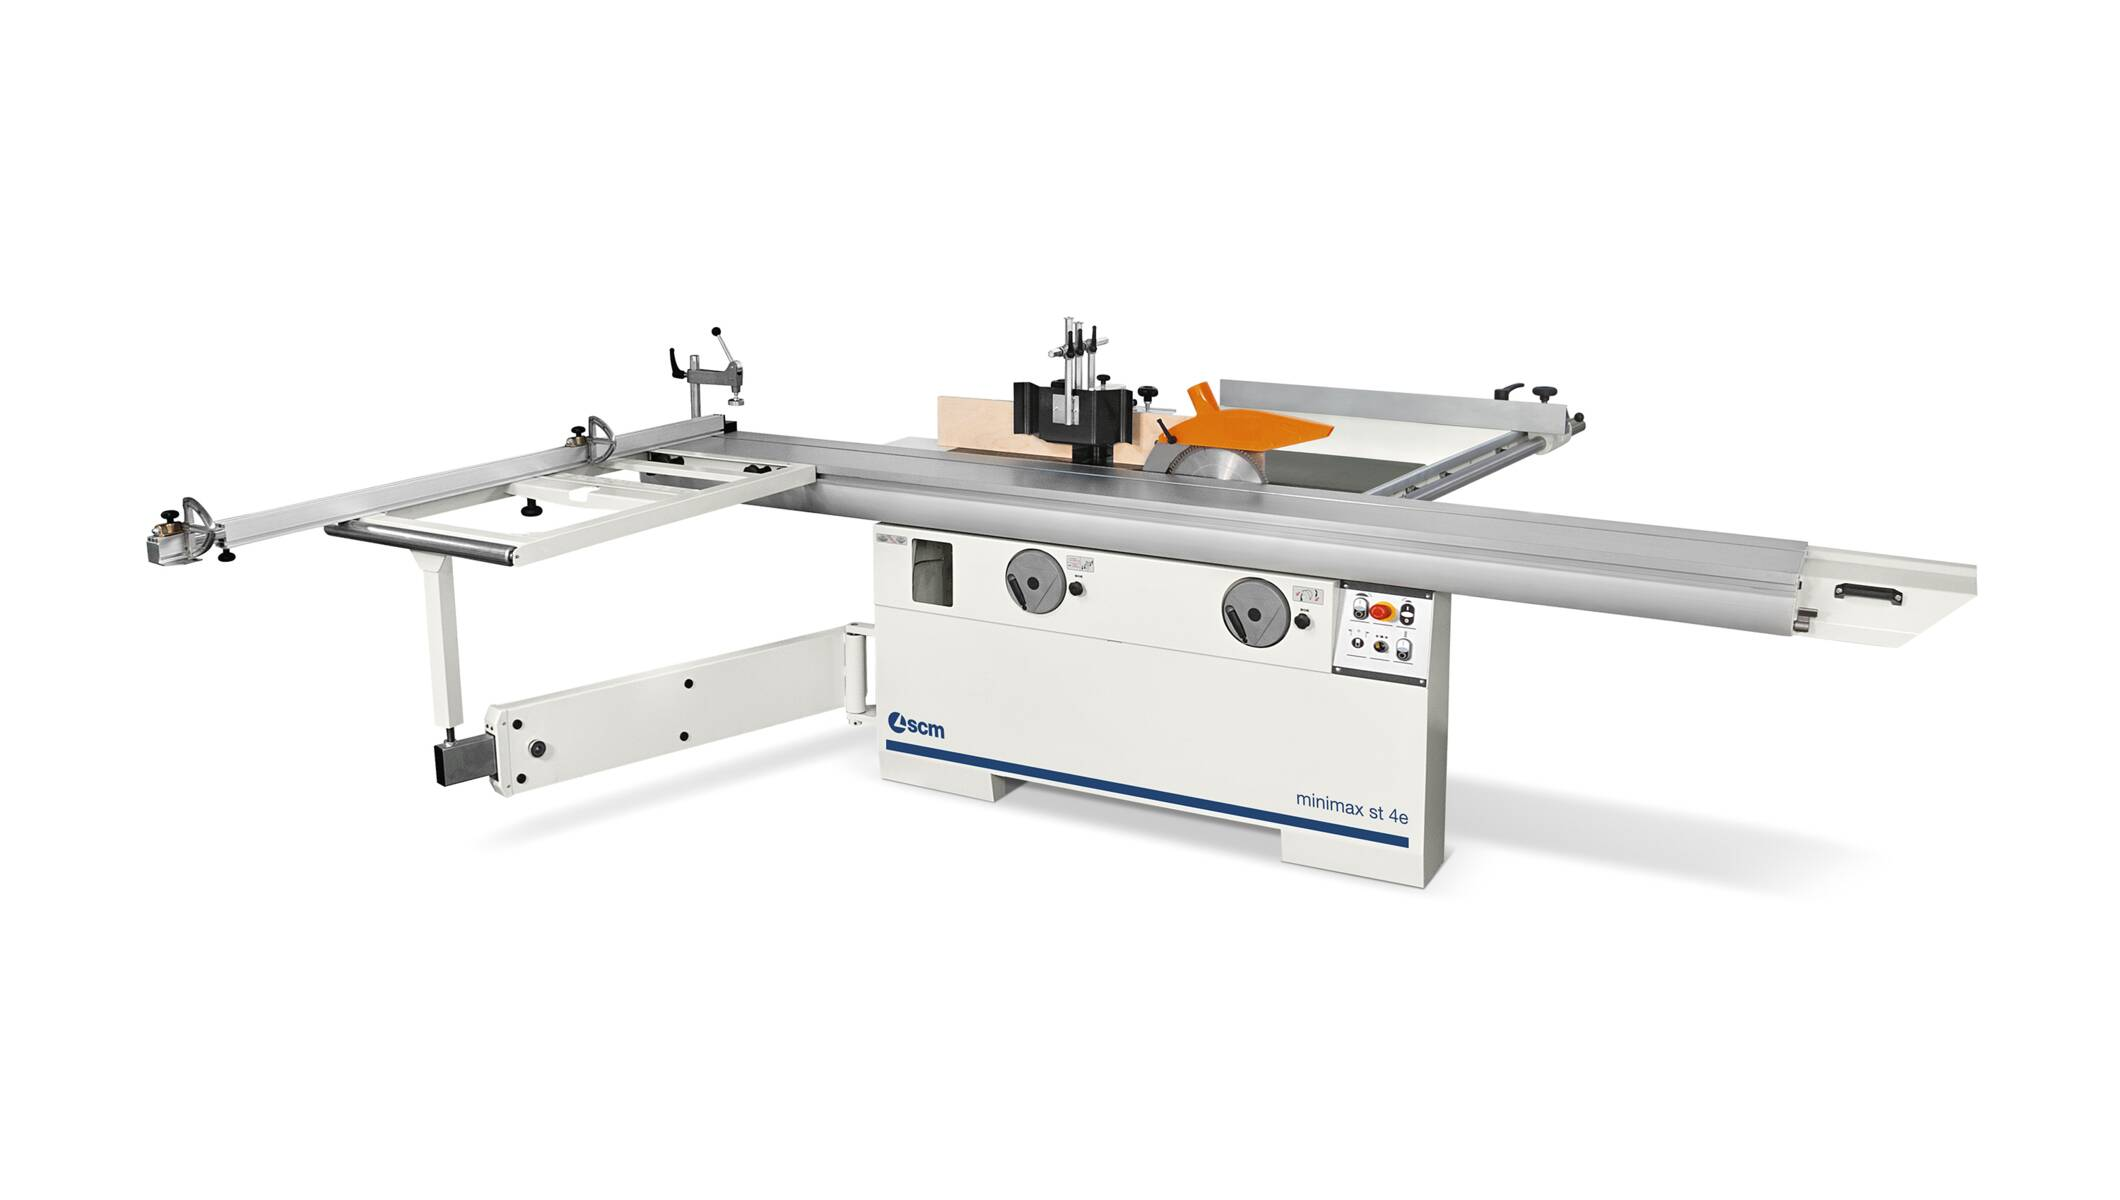 Joinery machines - Saw / shaper combination machines - minimax st 4e